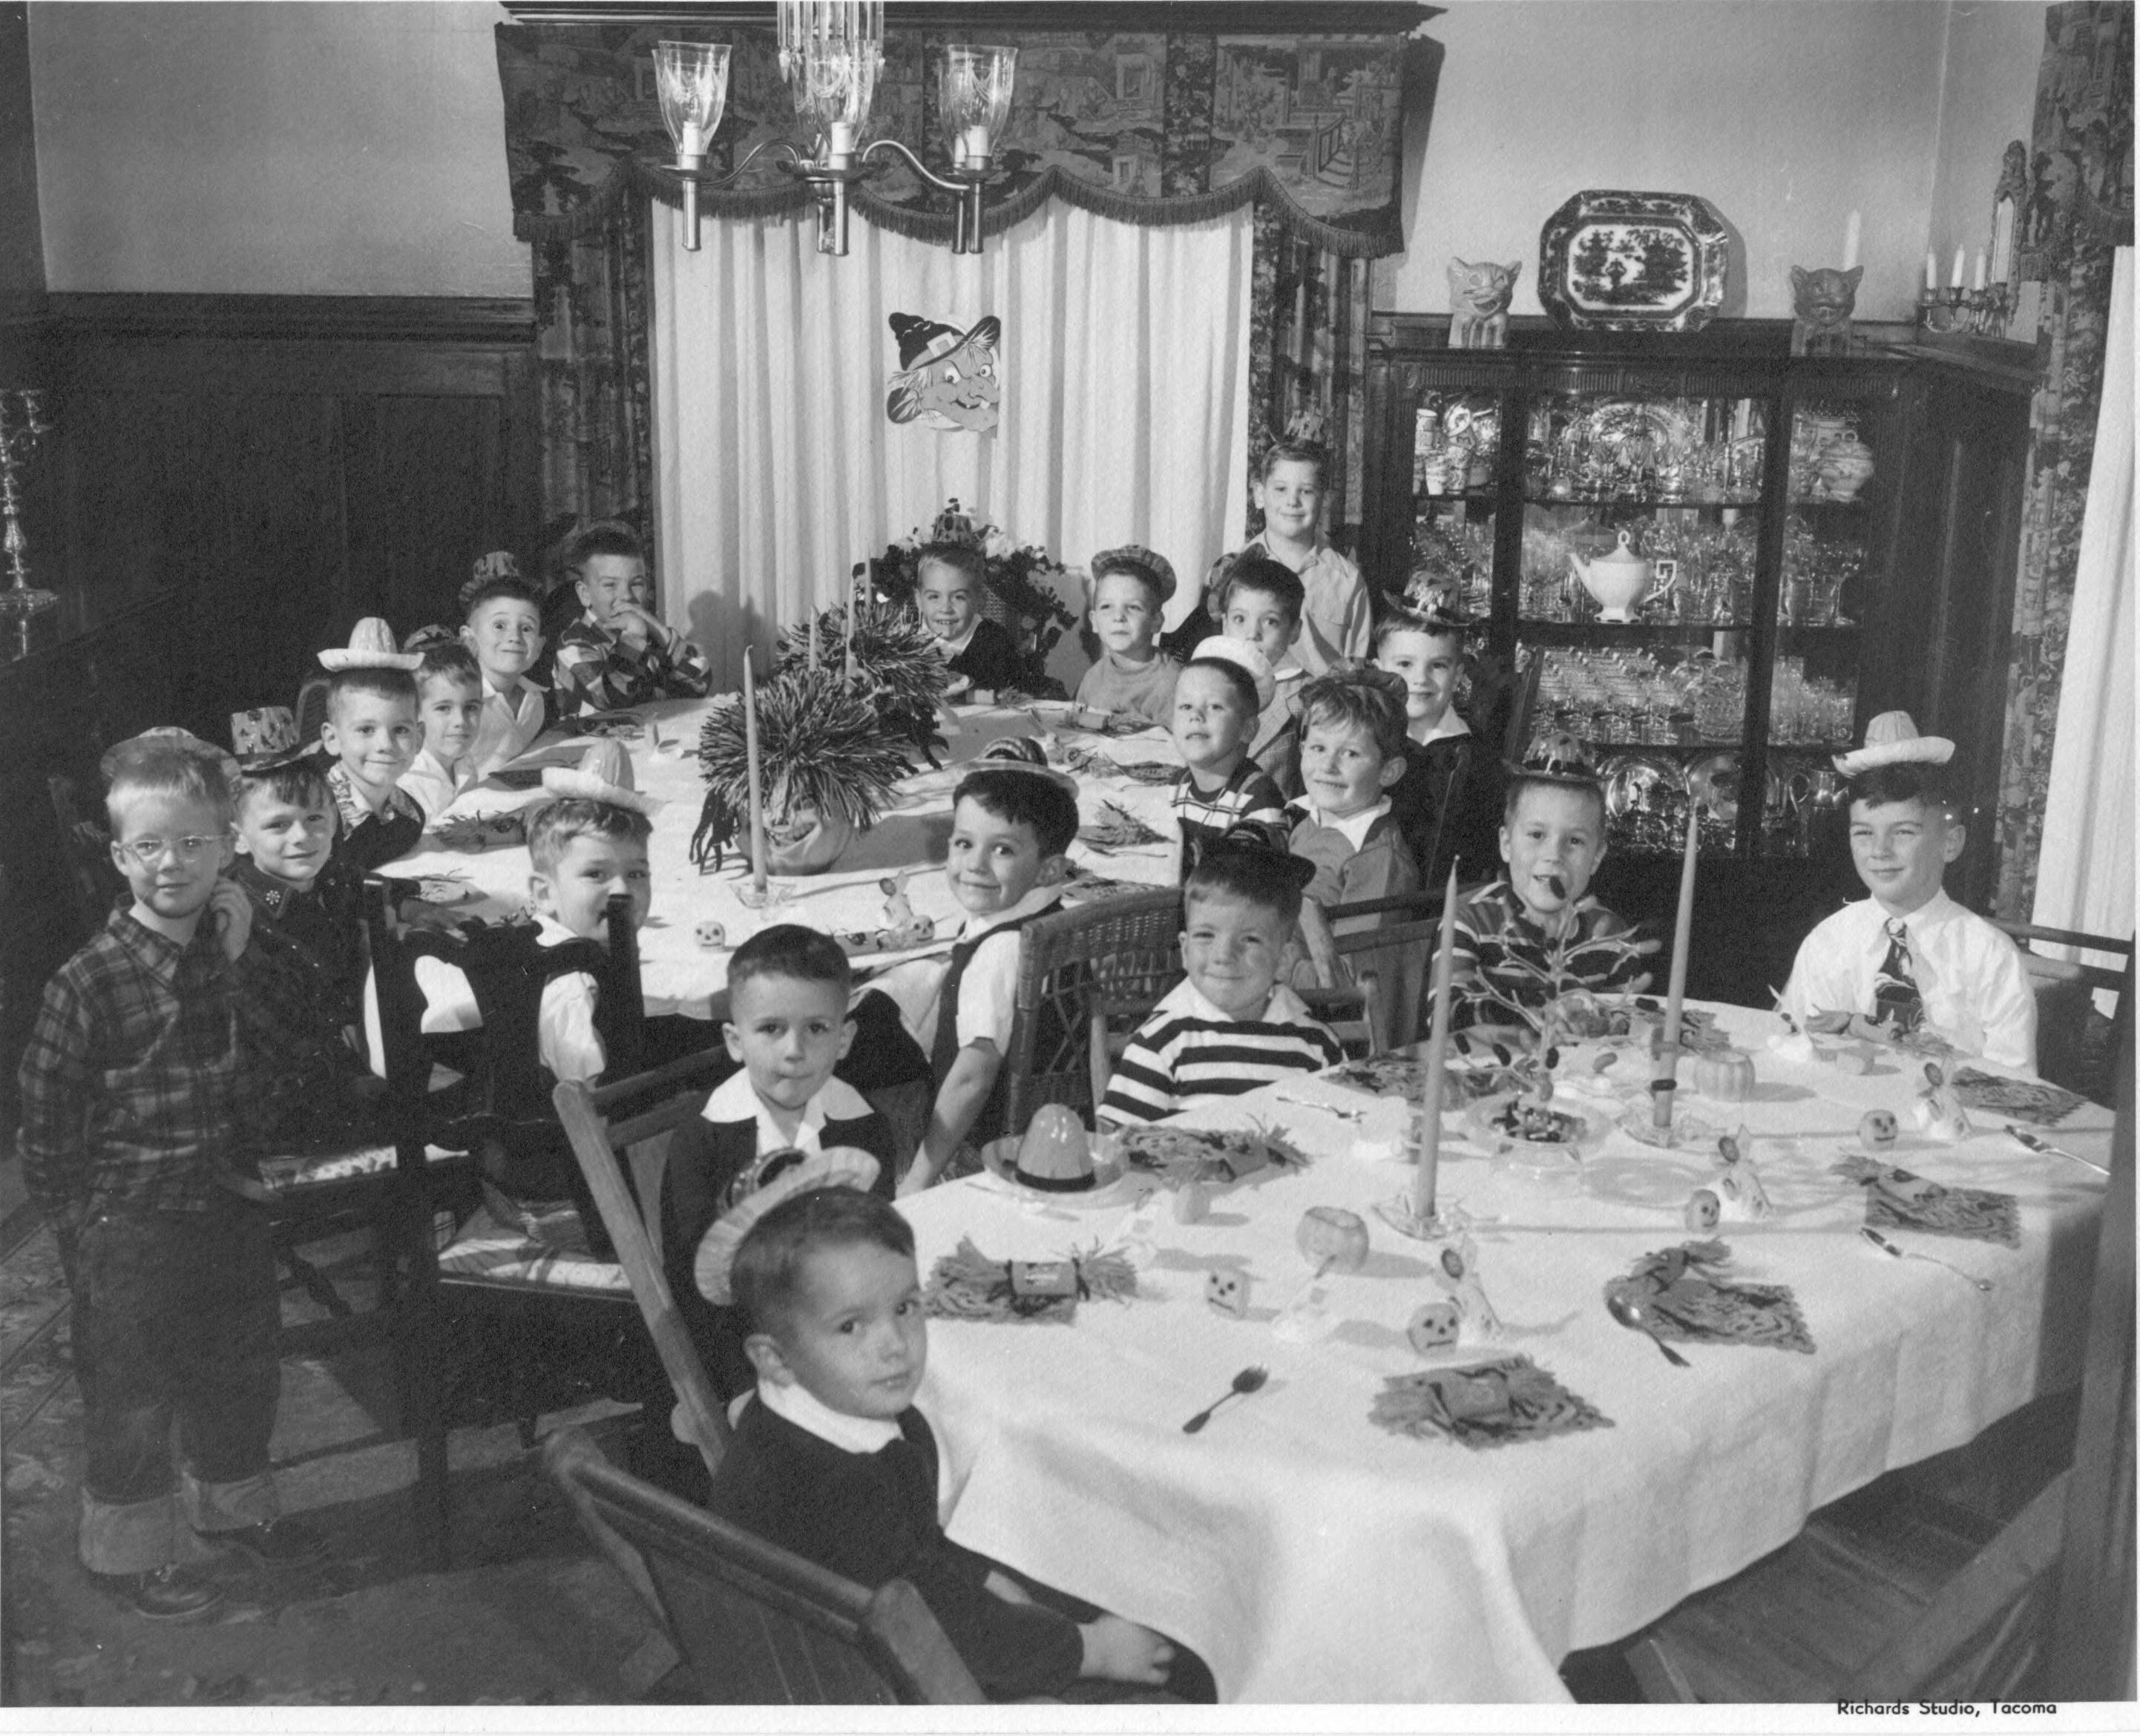 20 children have gathered for a Halloween Party. They are seated at two tables in a formal dining room with dark wood wainscoting, heavy draperies and a china cabinet full of glassware. Halloween decorations are seen on the tables, on top of the china cabinet and a witches' face is pinned to the curtain. Many of the boys wear party hats.